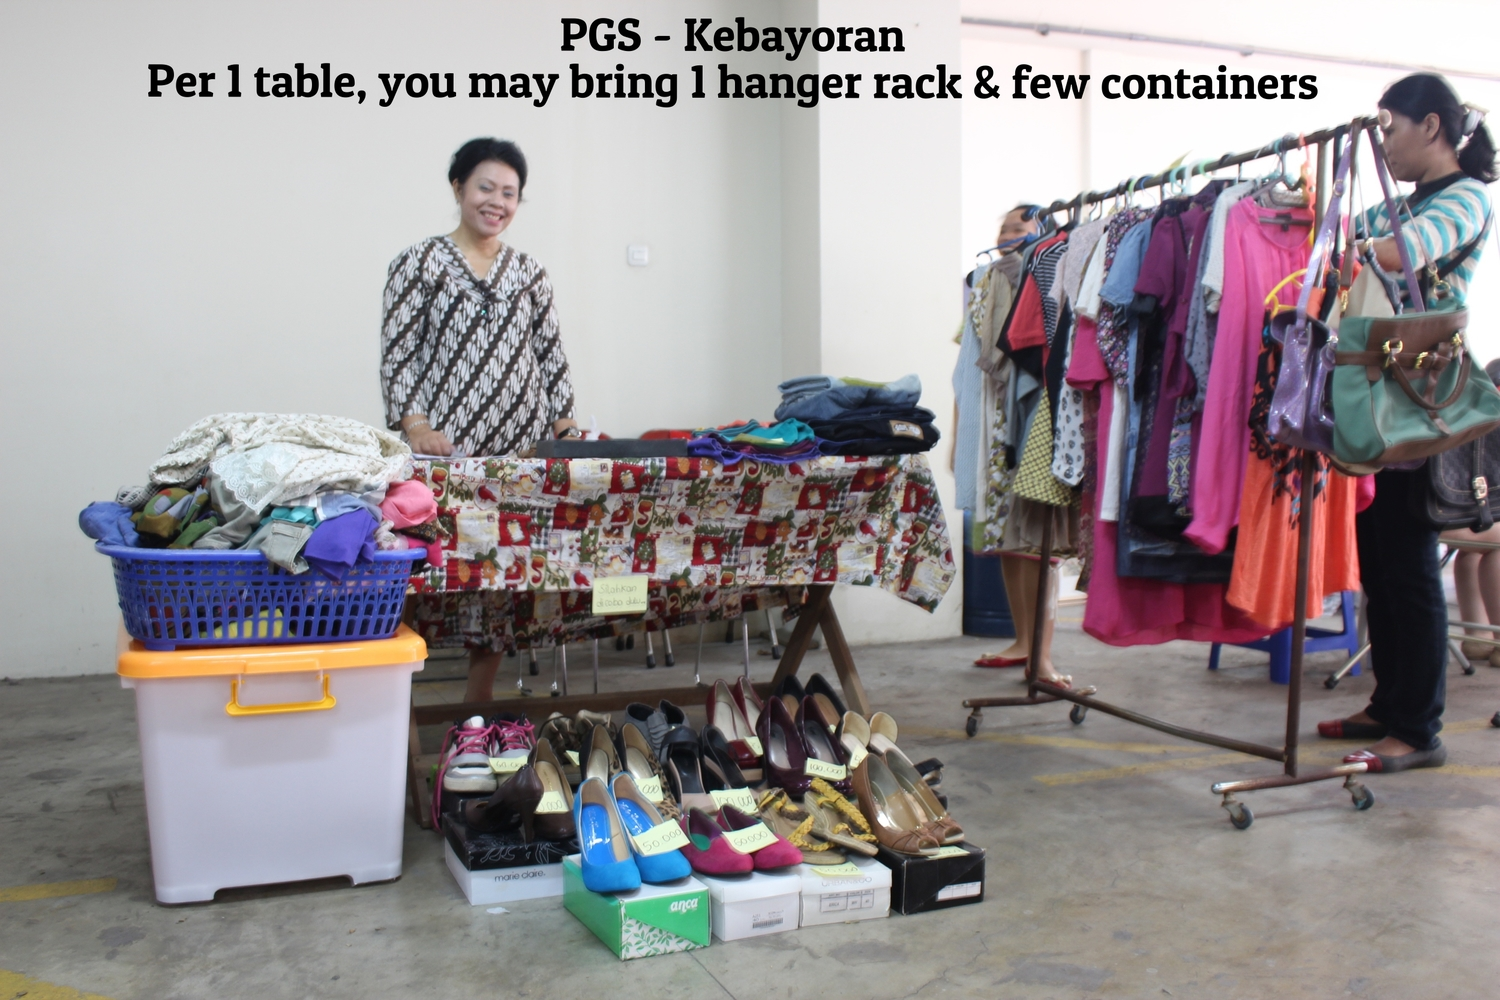 PGS - Kebayoran  Per 1 table, you may bring 1 hanger rack and a few containers